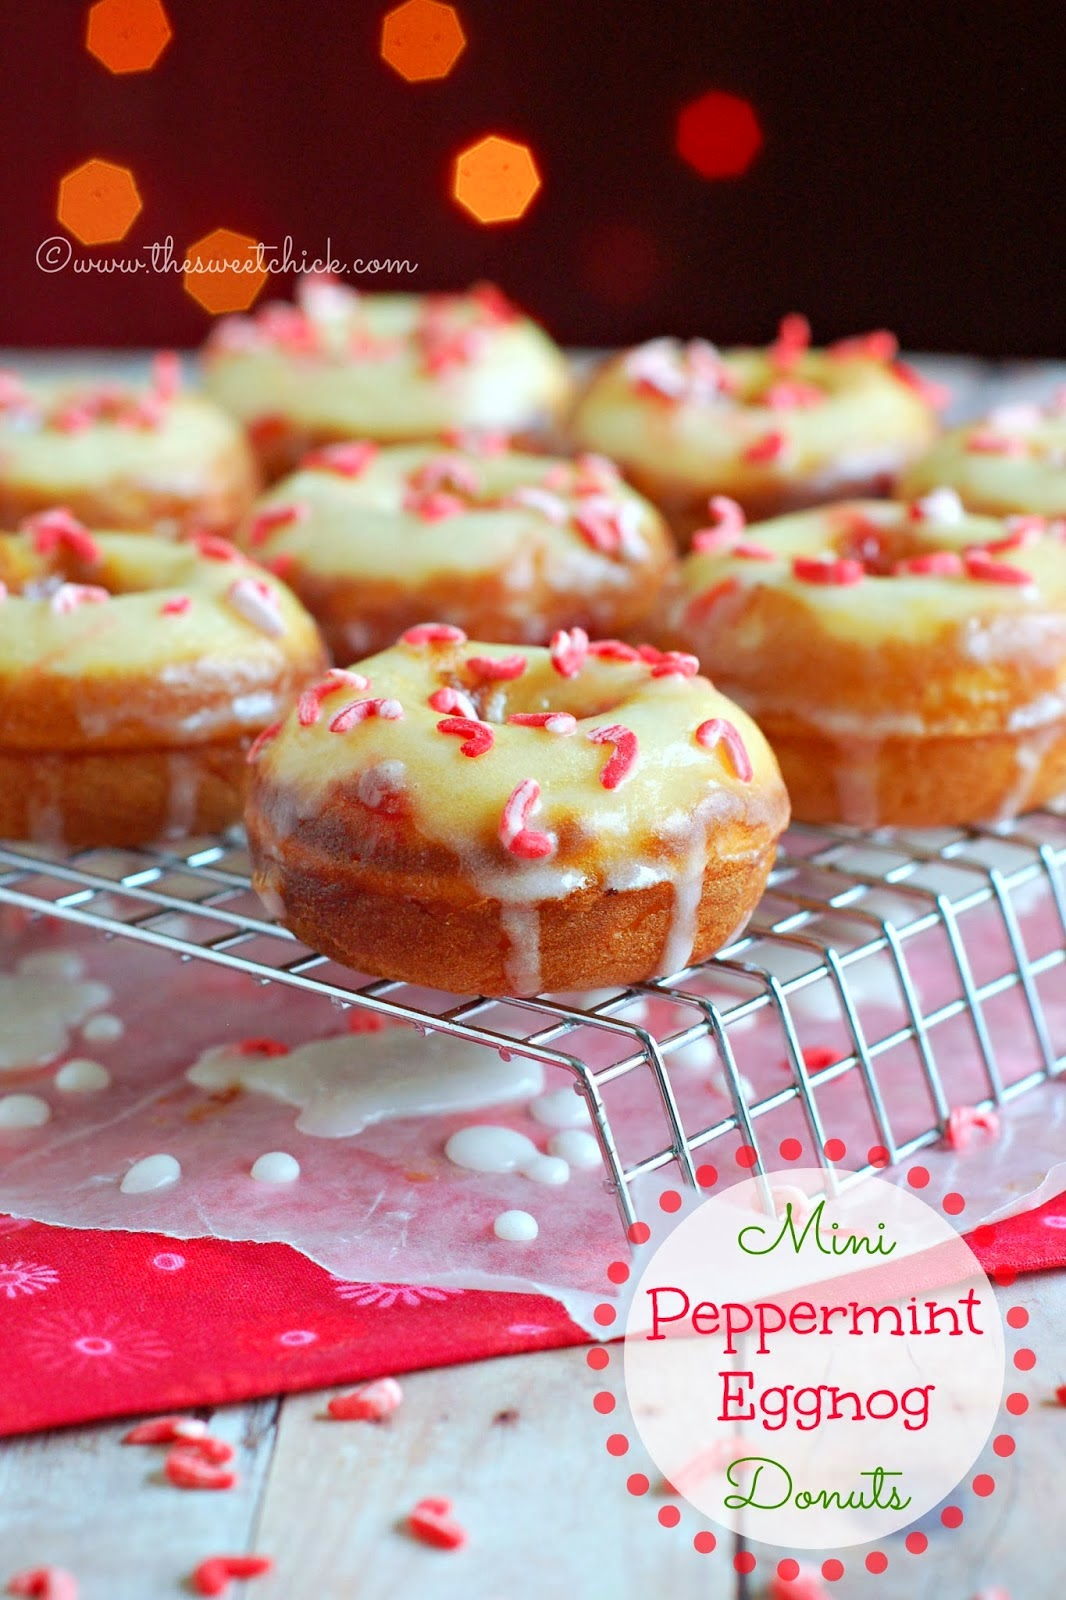 http://www.thesweetchick.com/2013/12/mini-peppermint-eggnog-donuts.html